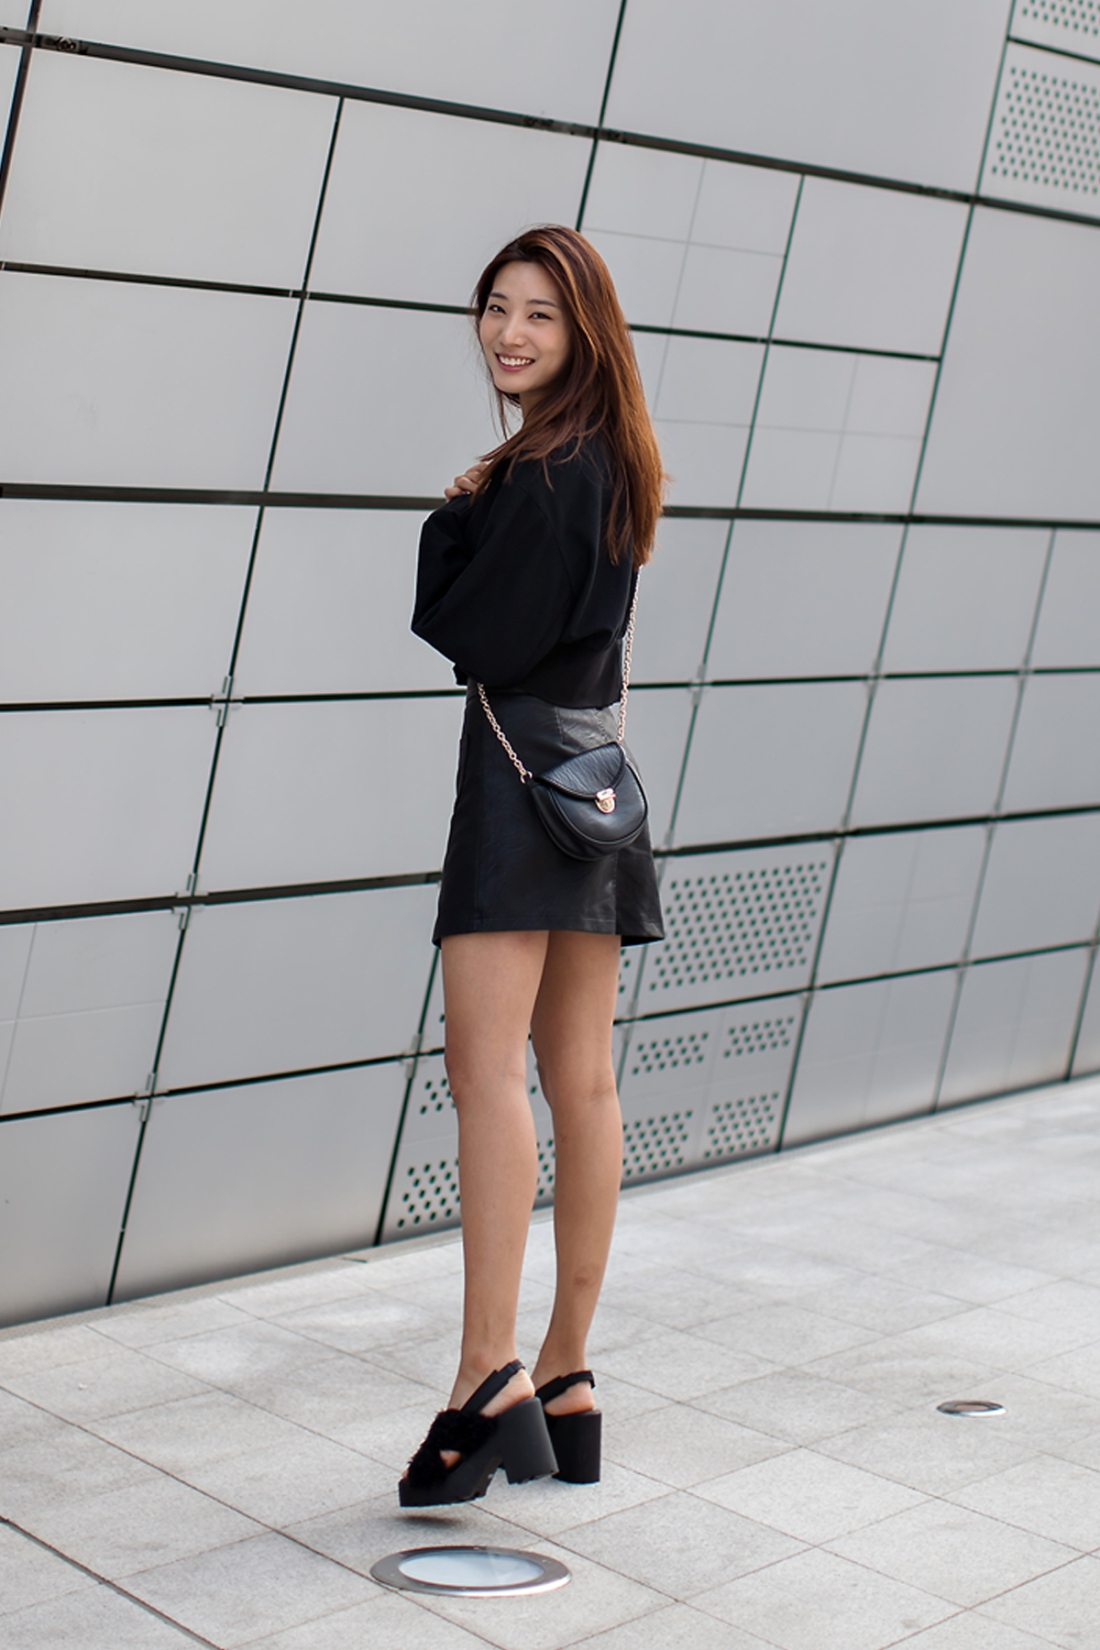 On the street… Lee Hyunji Seoul fashion week 2016 SS